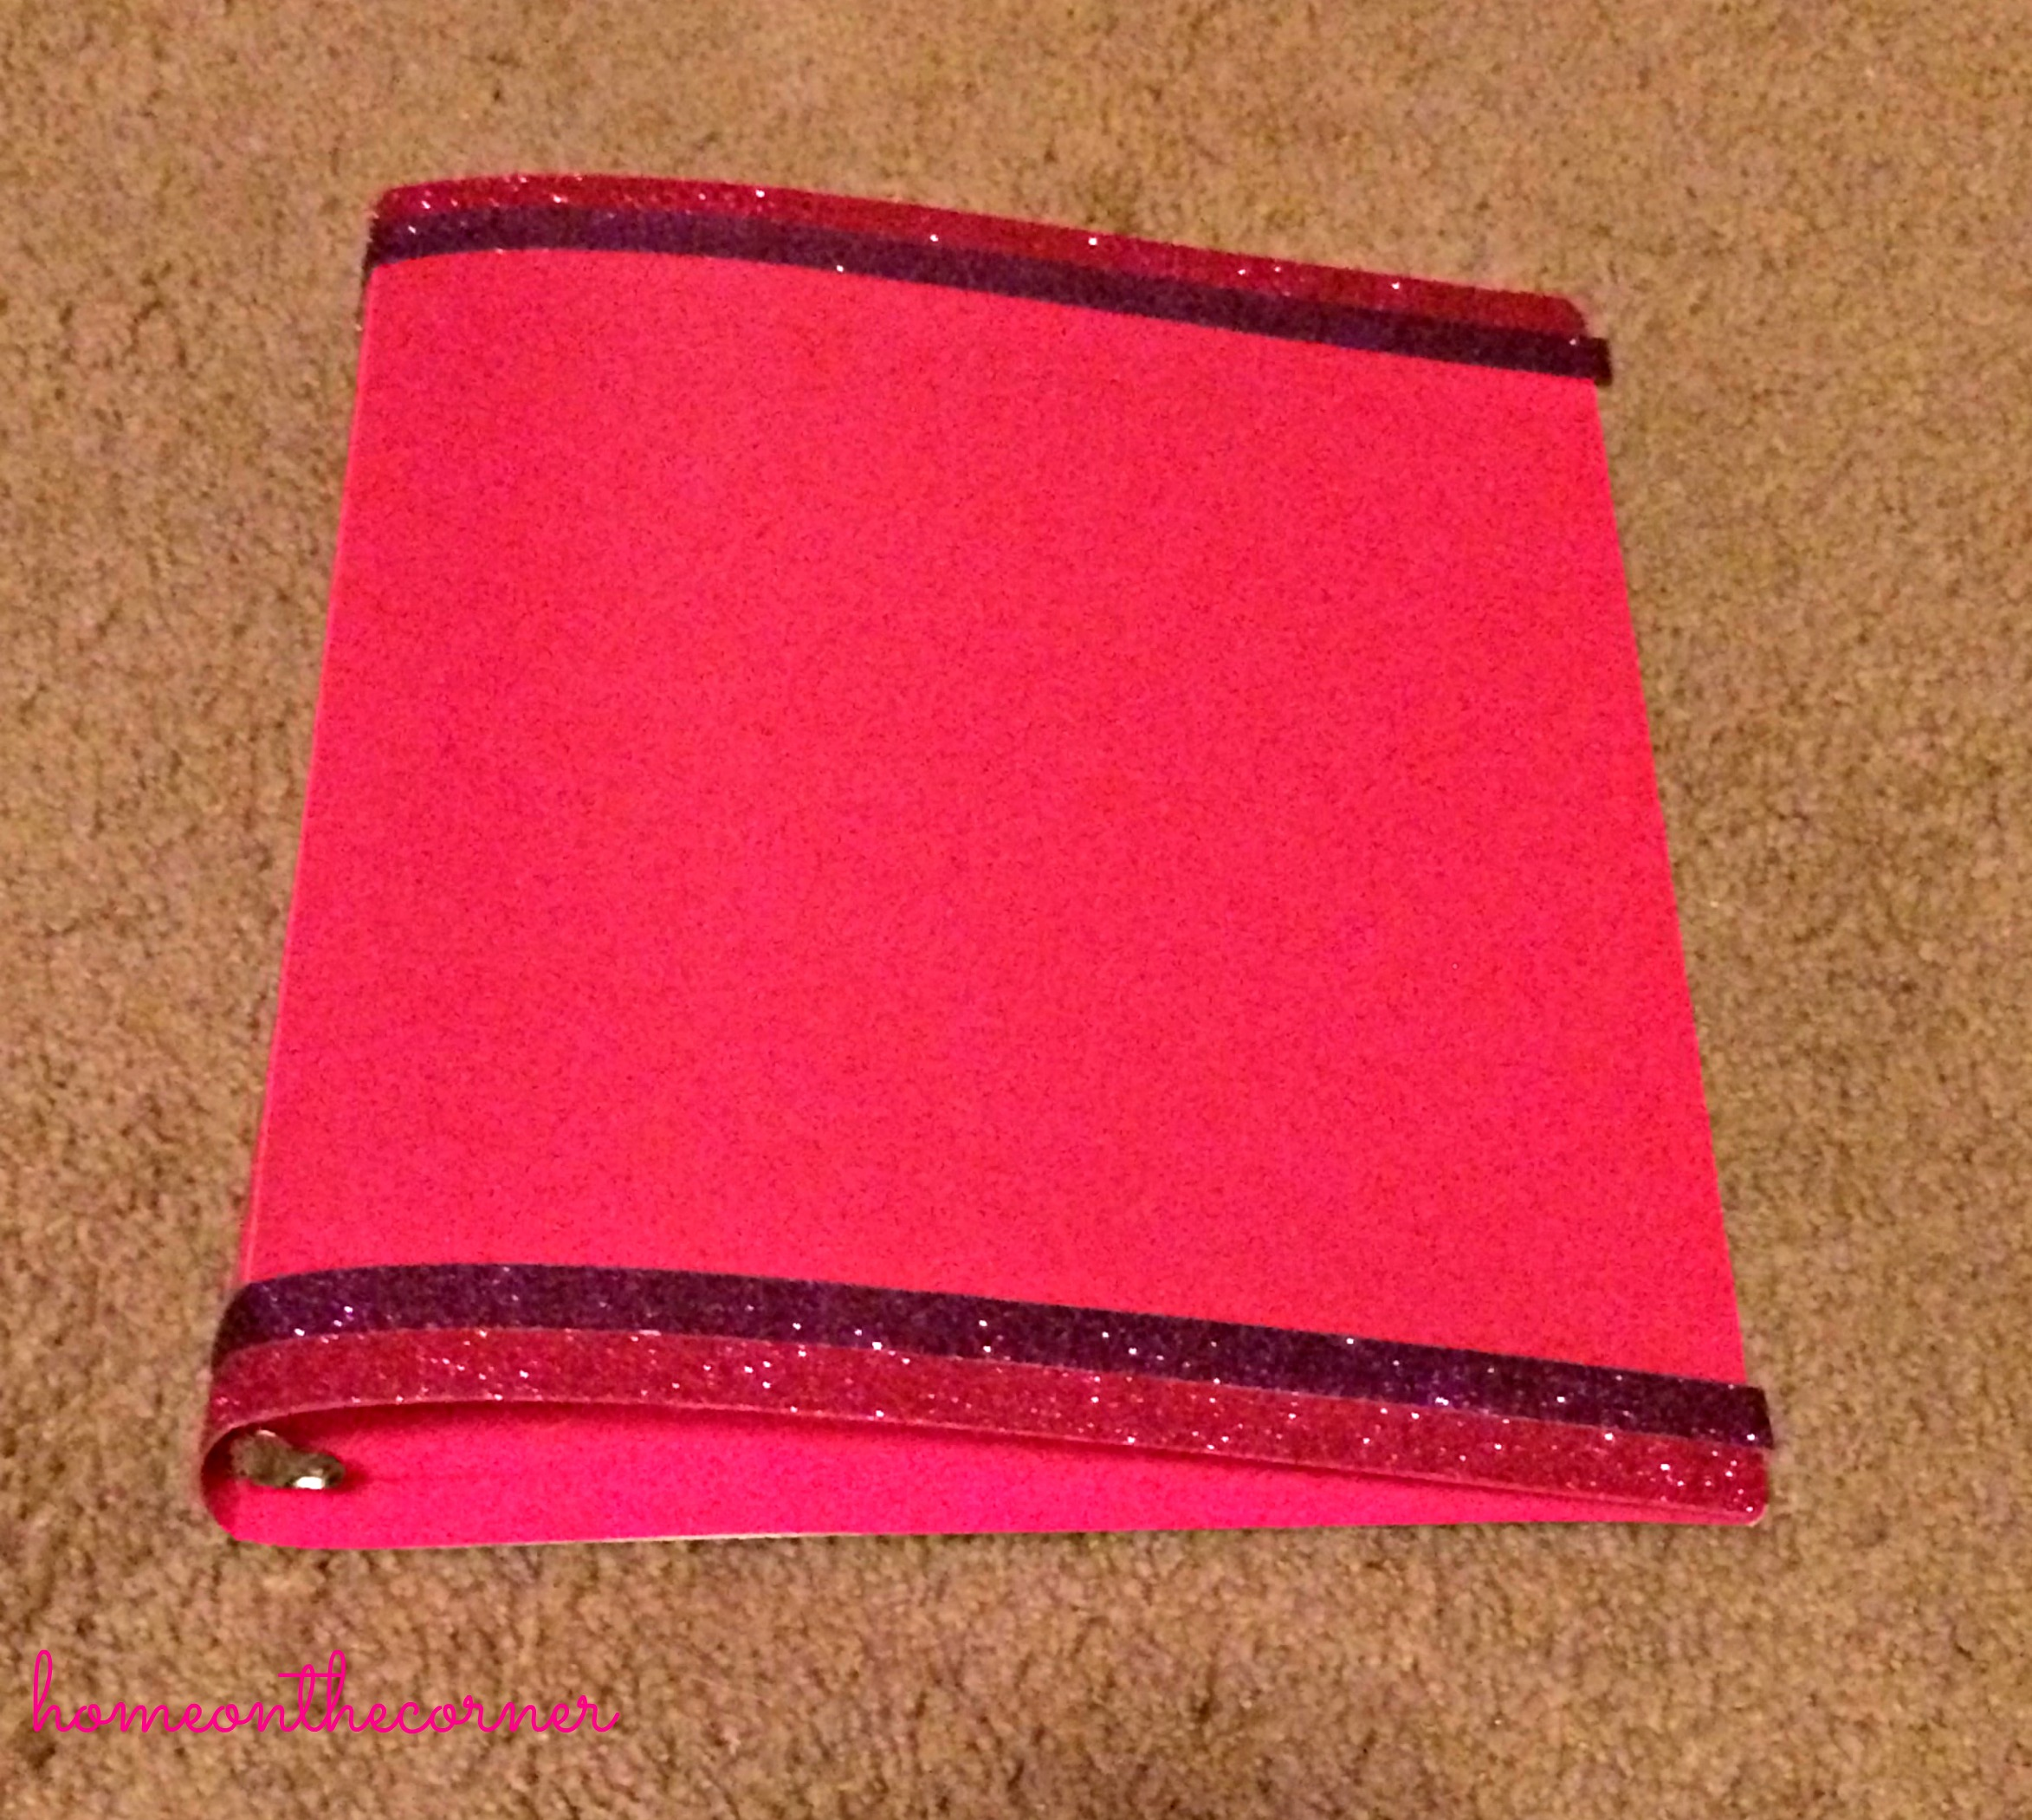 Pink Binder with Tape